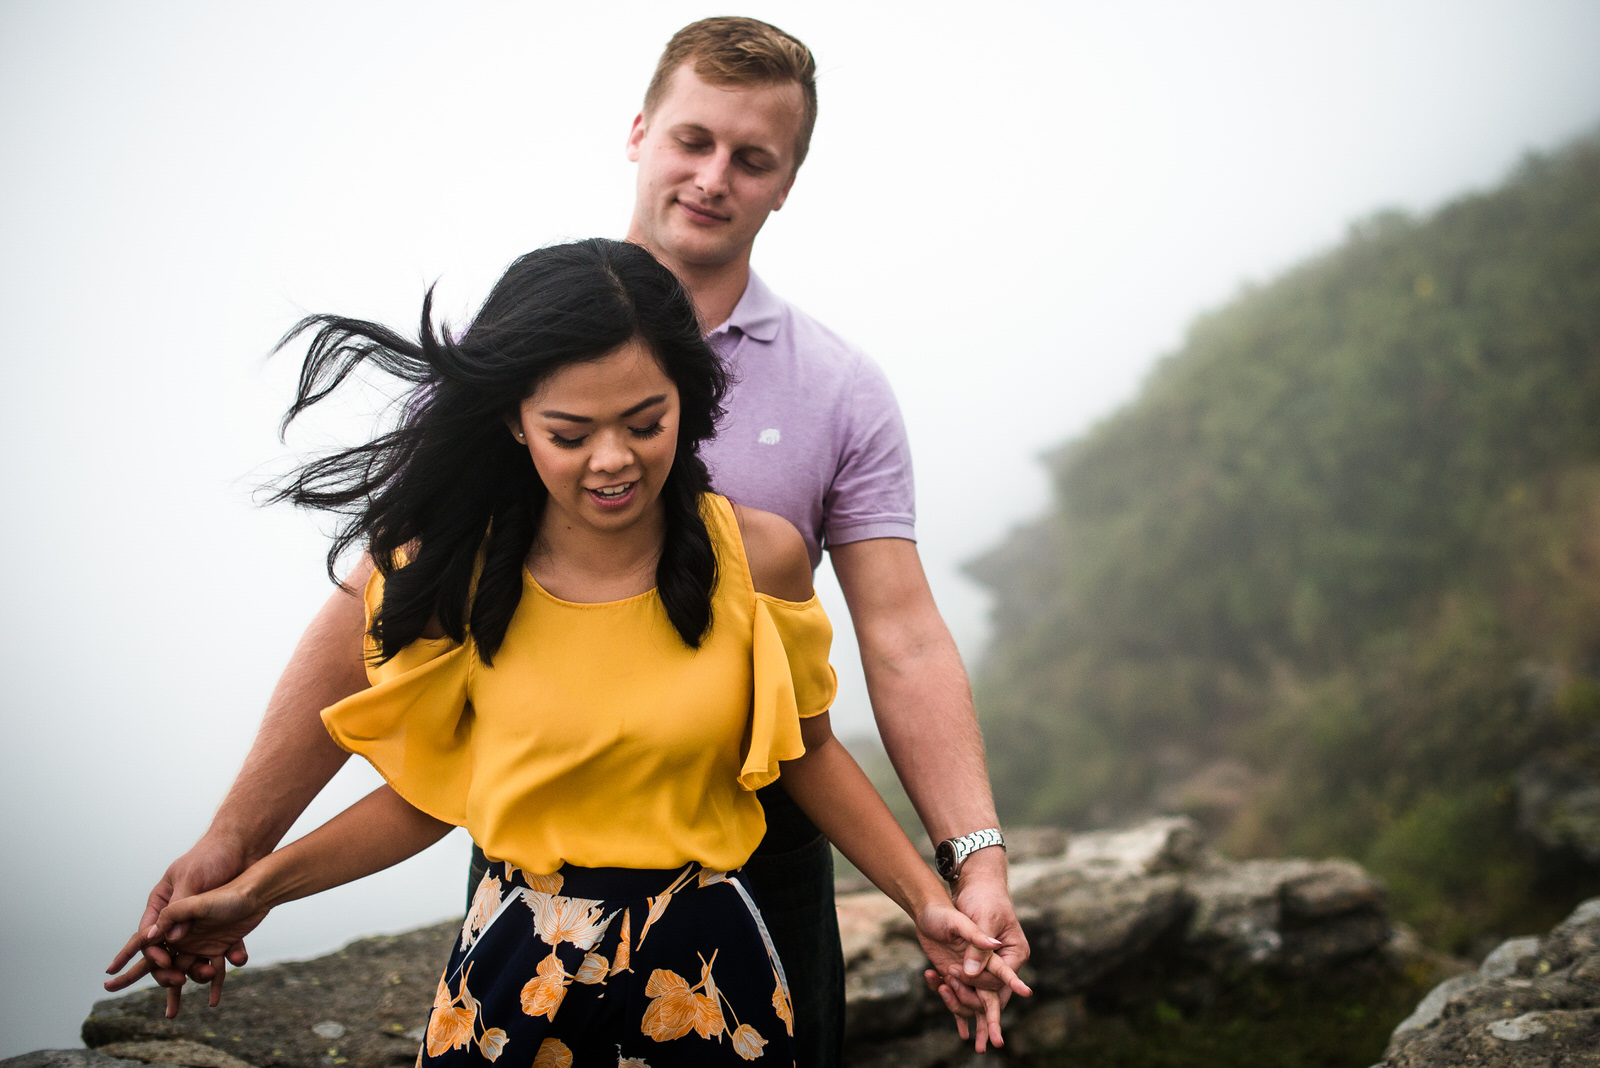 Craggy-Gardens-Engagement-Session-51.jpg